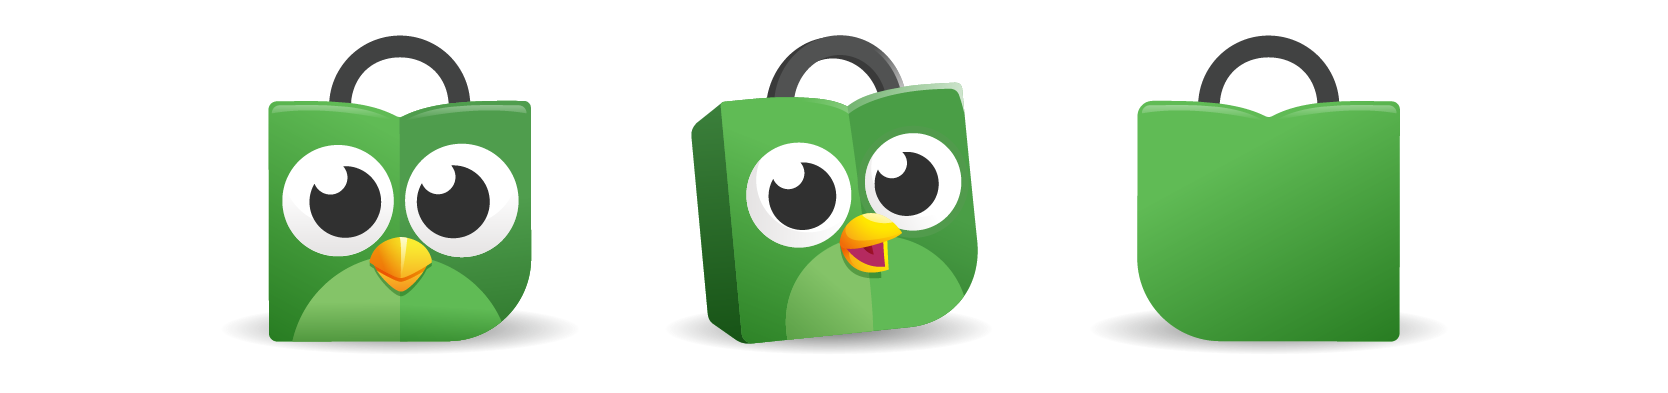 building toped universe how the logo and mascot can change your by febrian anugrah w life at tokopedia medium building toped universe how the logo